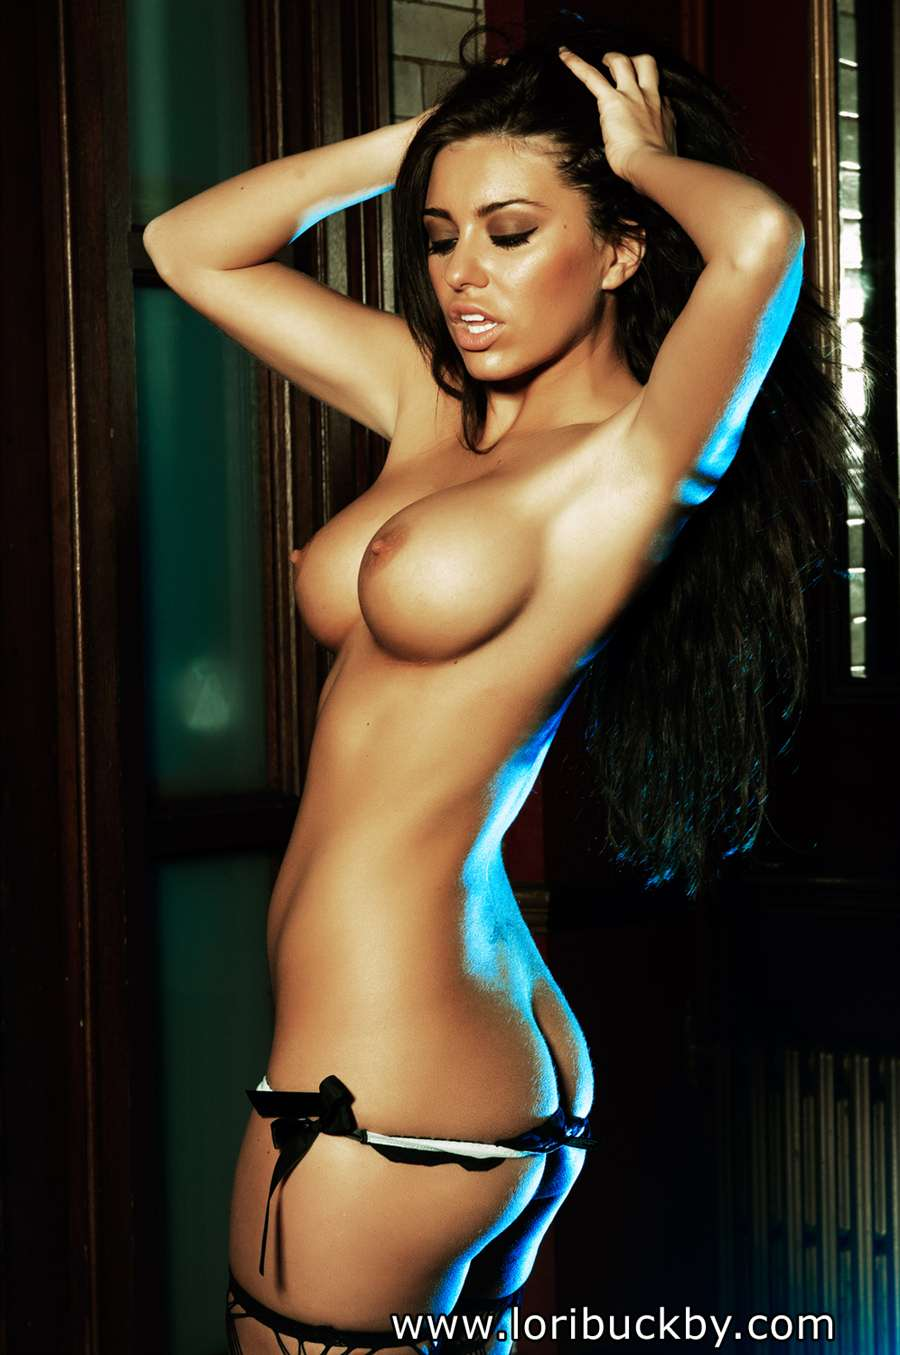 Lori buckby totally naked on back on table